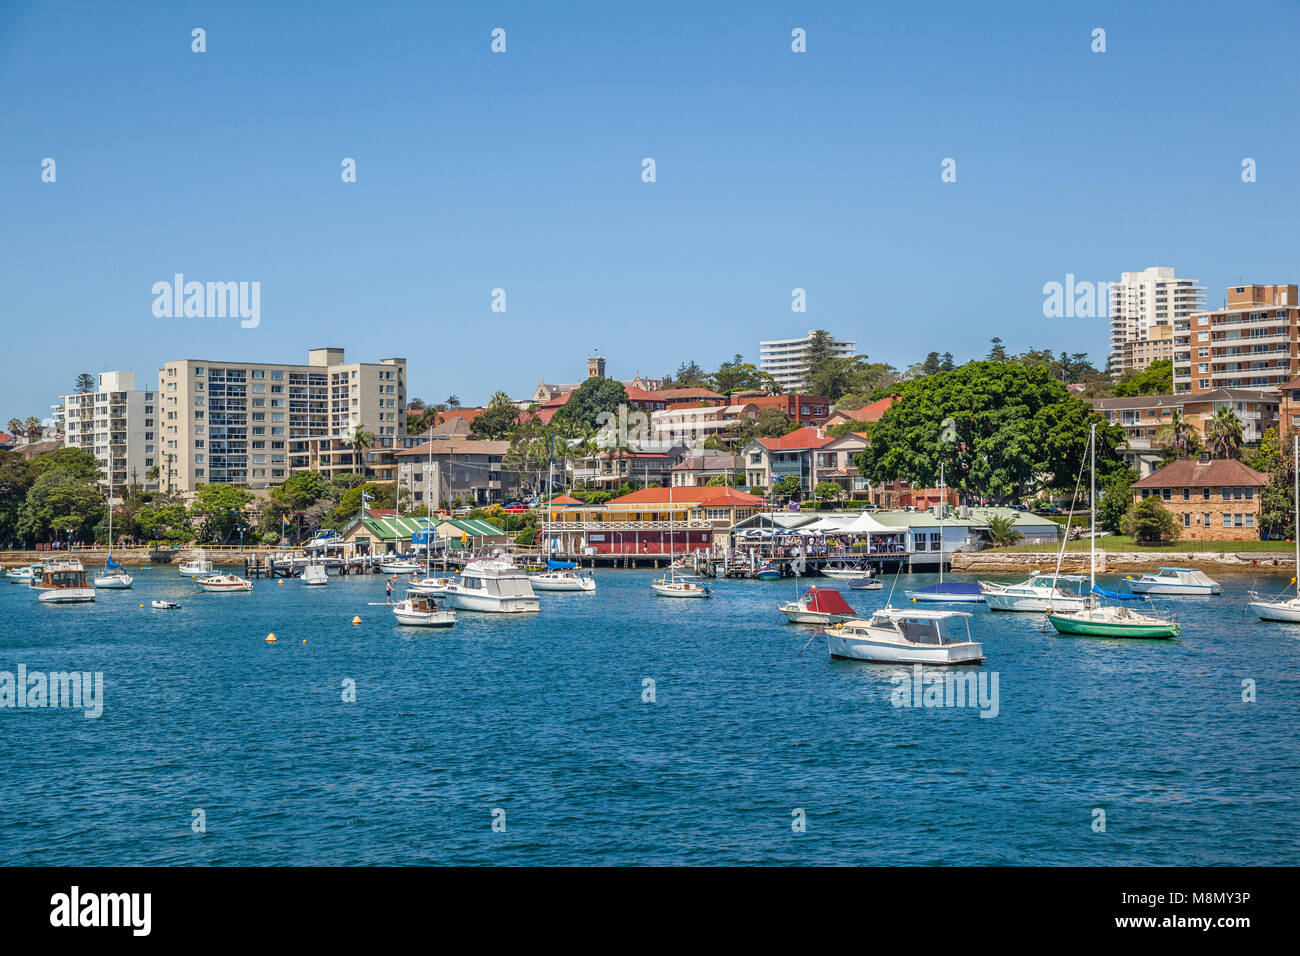 Australia, New South Wales, Sydney, Northern Beaches Region, view of Manly Cove with Esplande and Manly Yacht Club - Stock Image